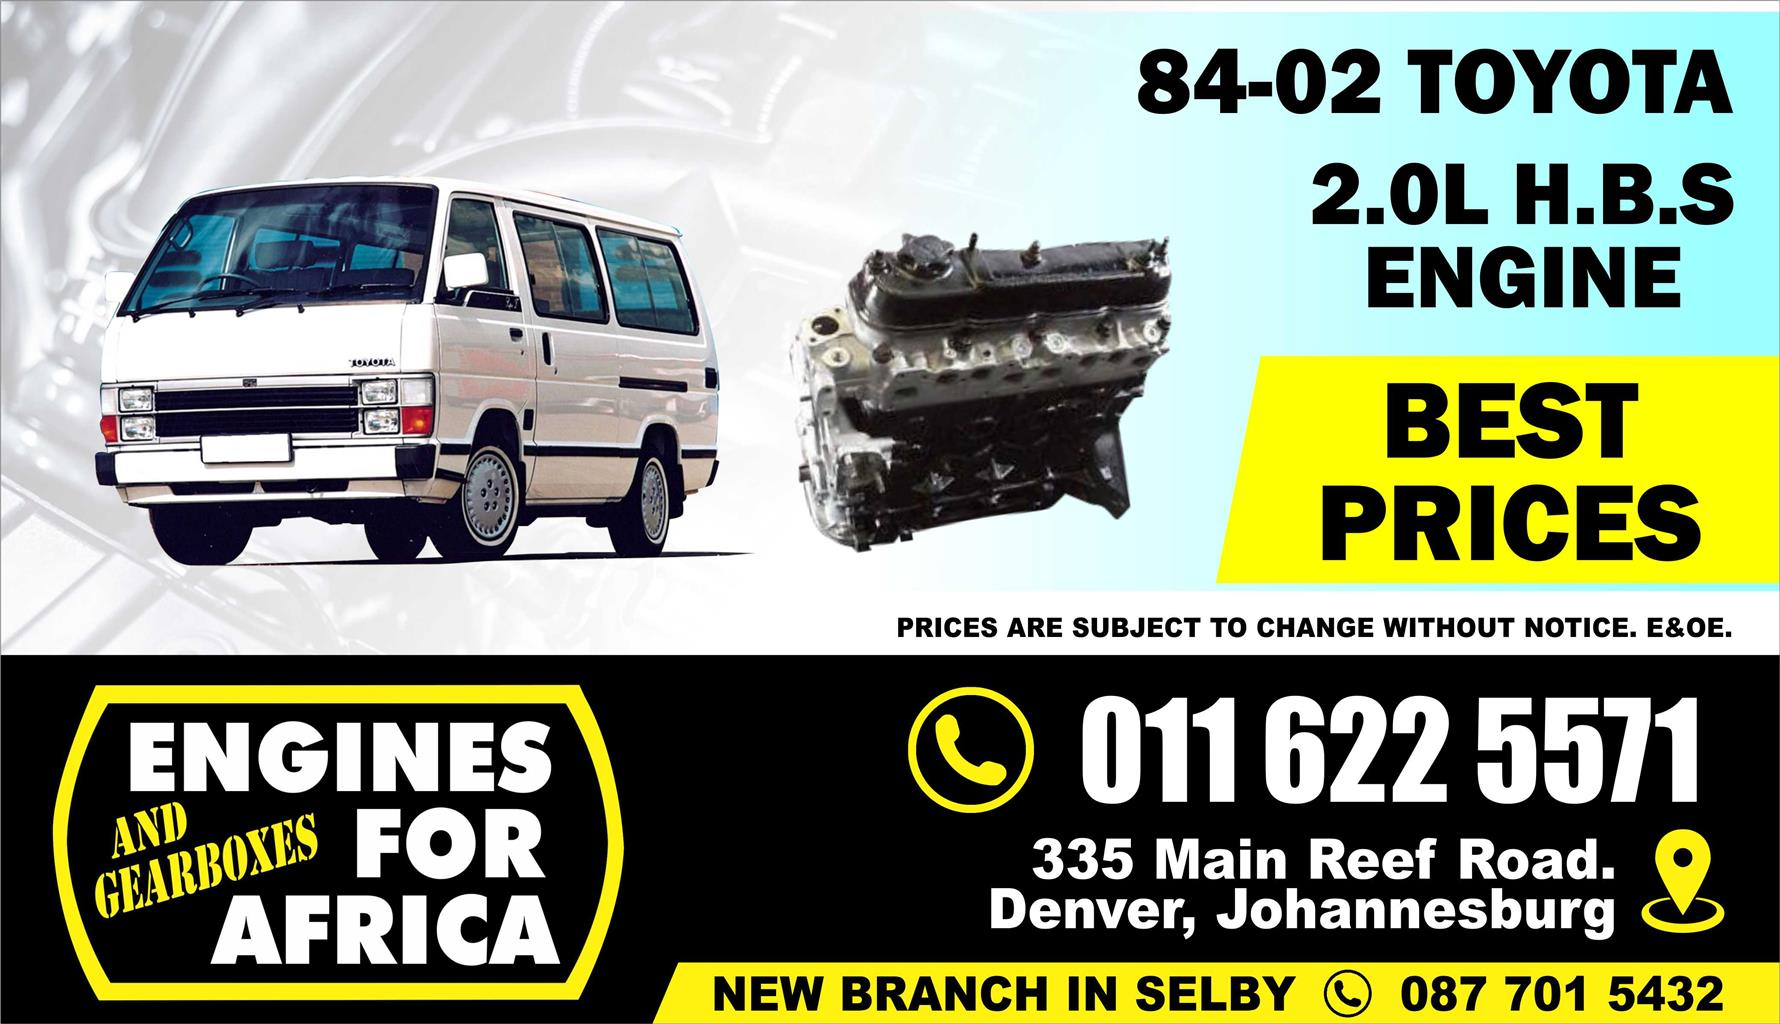 Used 3YP H B S 2 0L 84-02 Engine FOR SALE